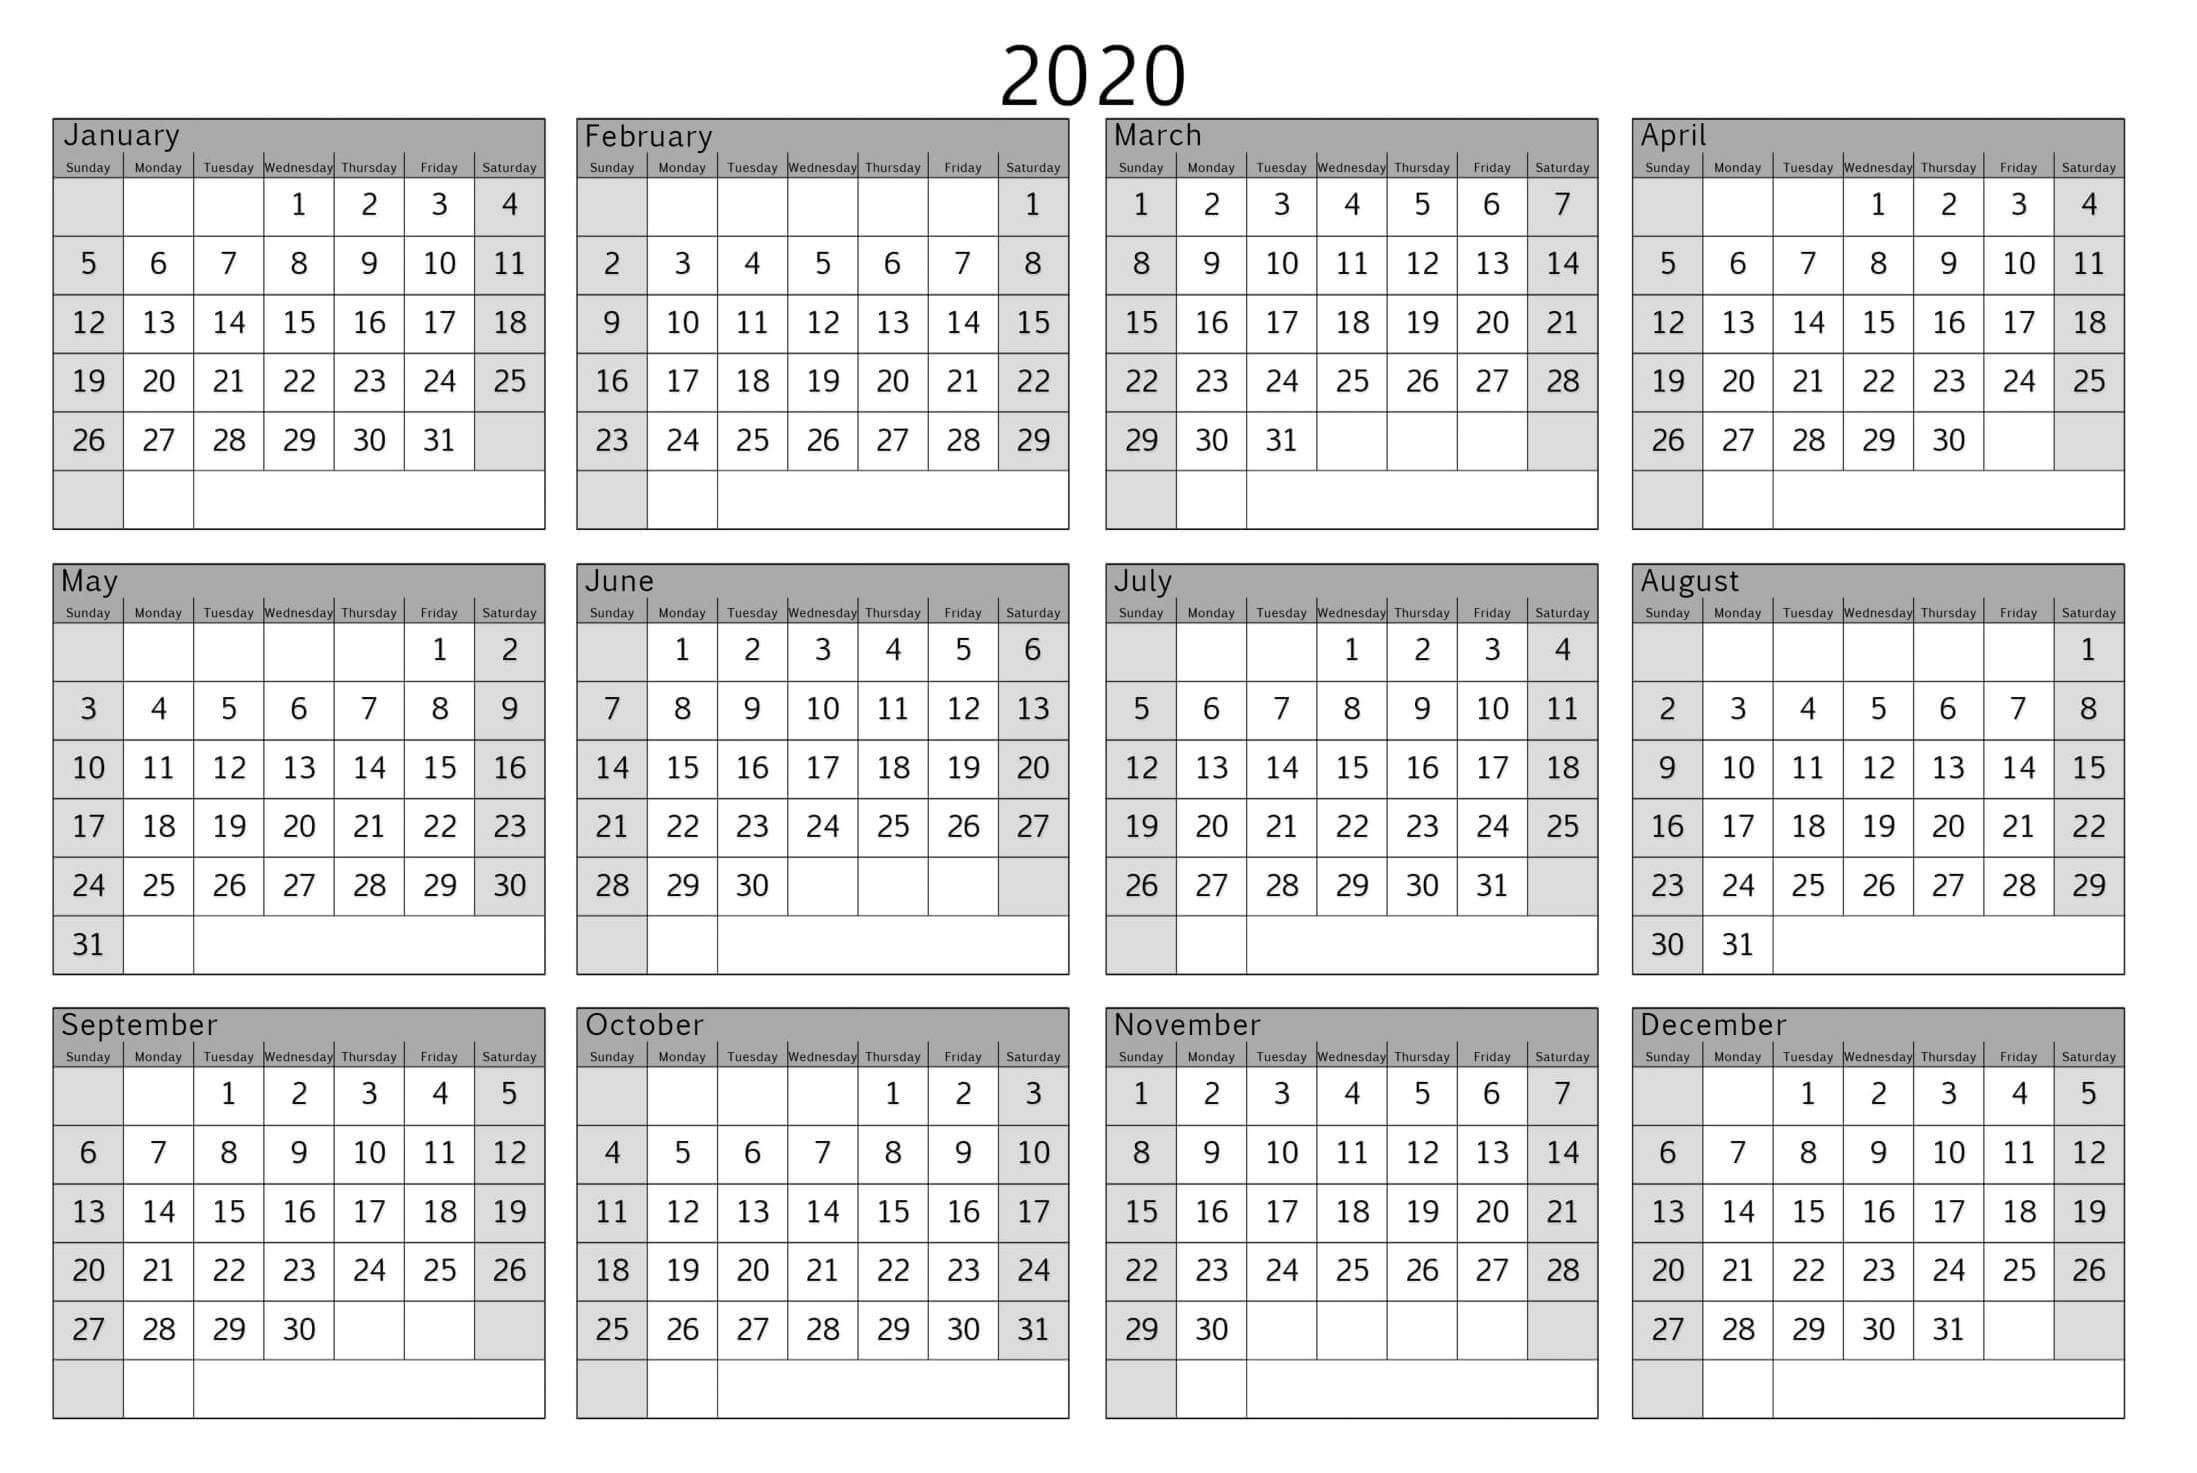 Colorful Yearly Calendar Template With Notes 2020 Word - Set for Printable 2020 Calendar Year At A Glance